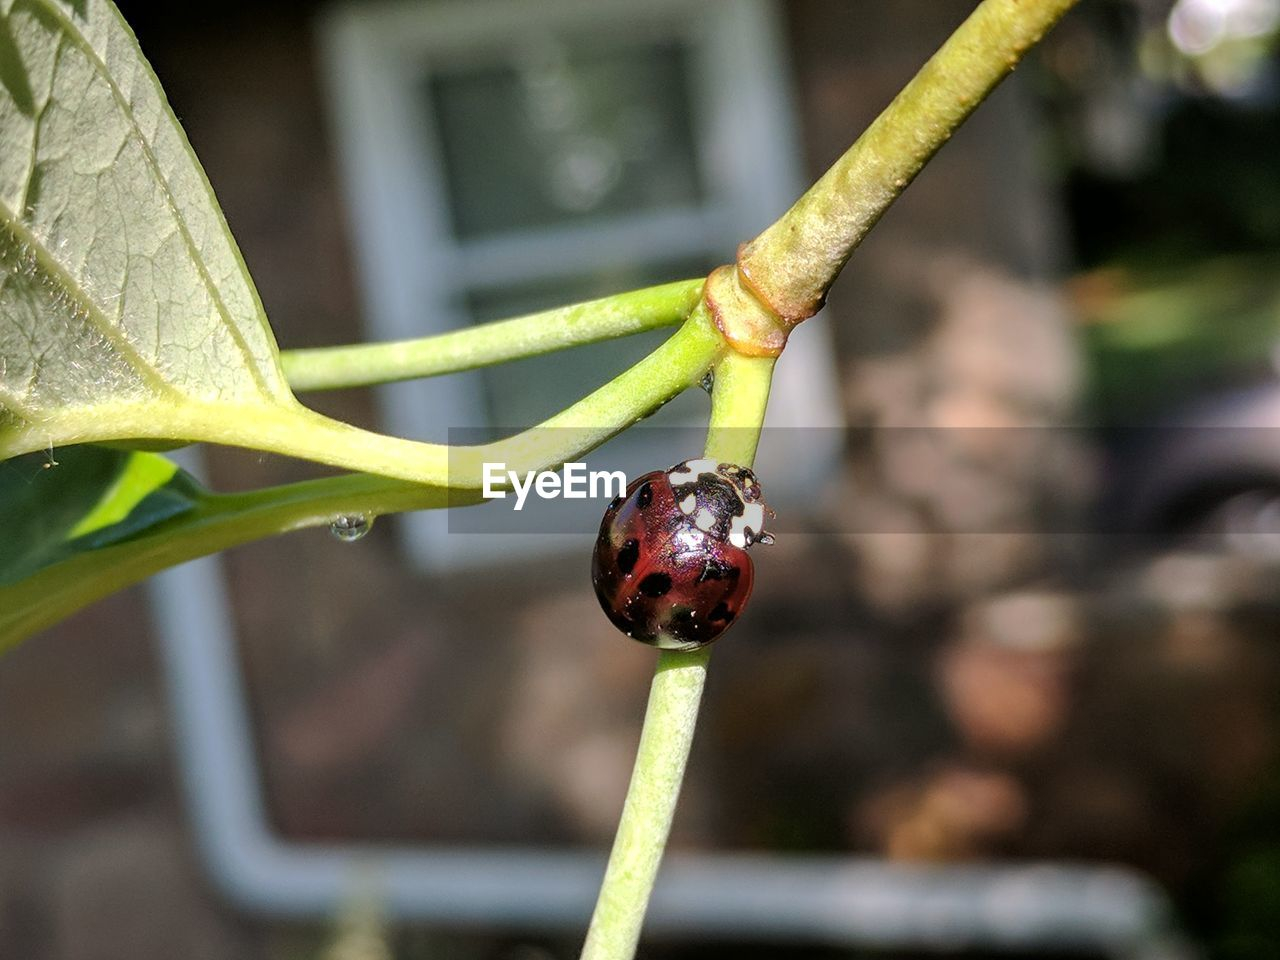 focus on foreground, close-up, no people, plant, day, food and drink, nature, food, invertebrate, insect, freshness, animal, animal themes, growth, animal wildlife, animals in the wild, healthy eating, plant stem, plant part, outdoors